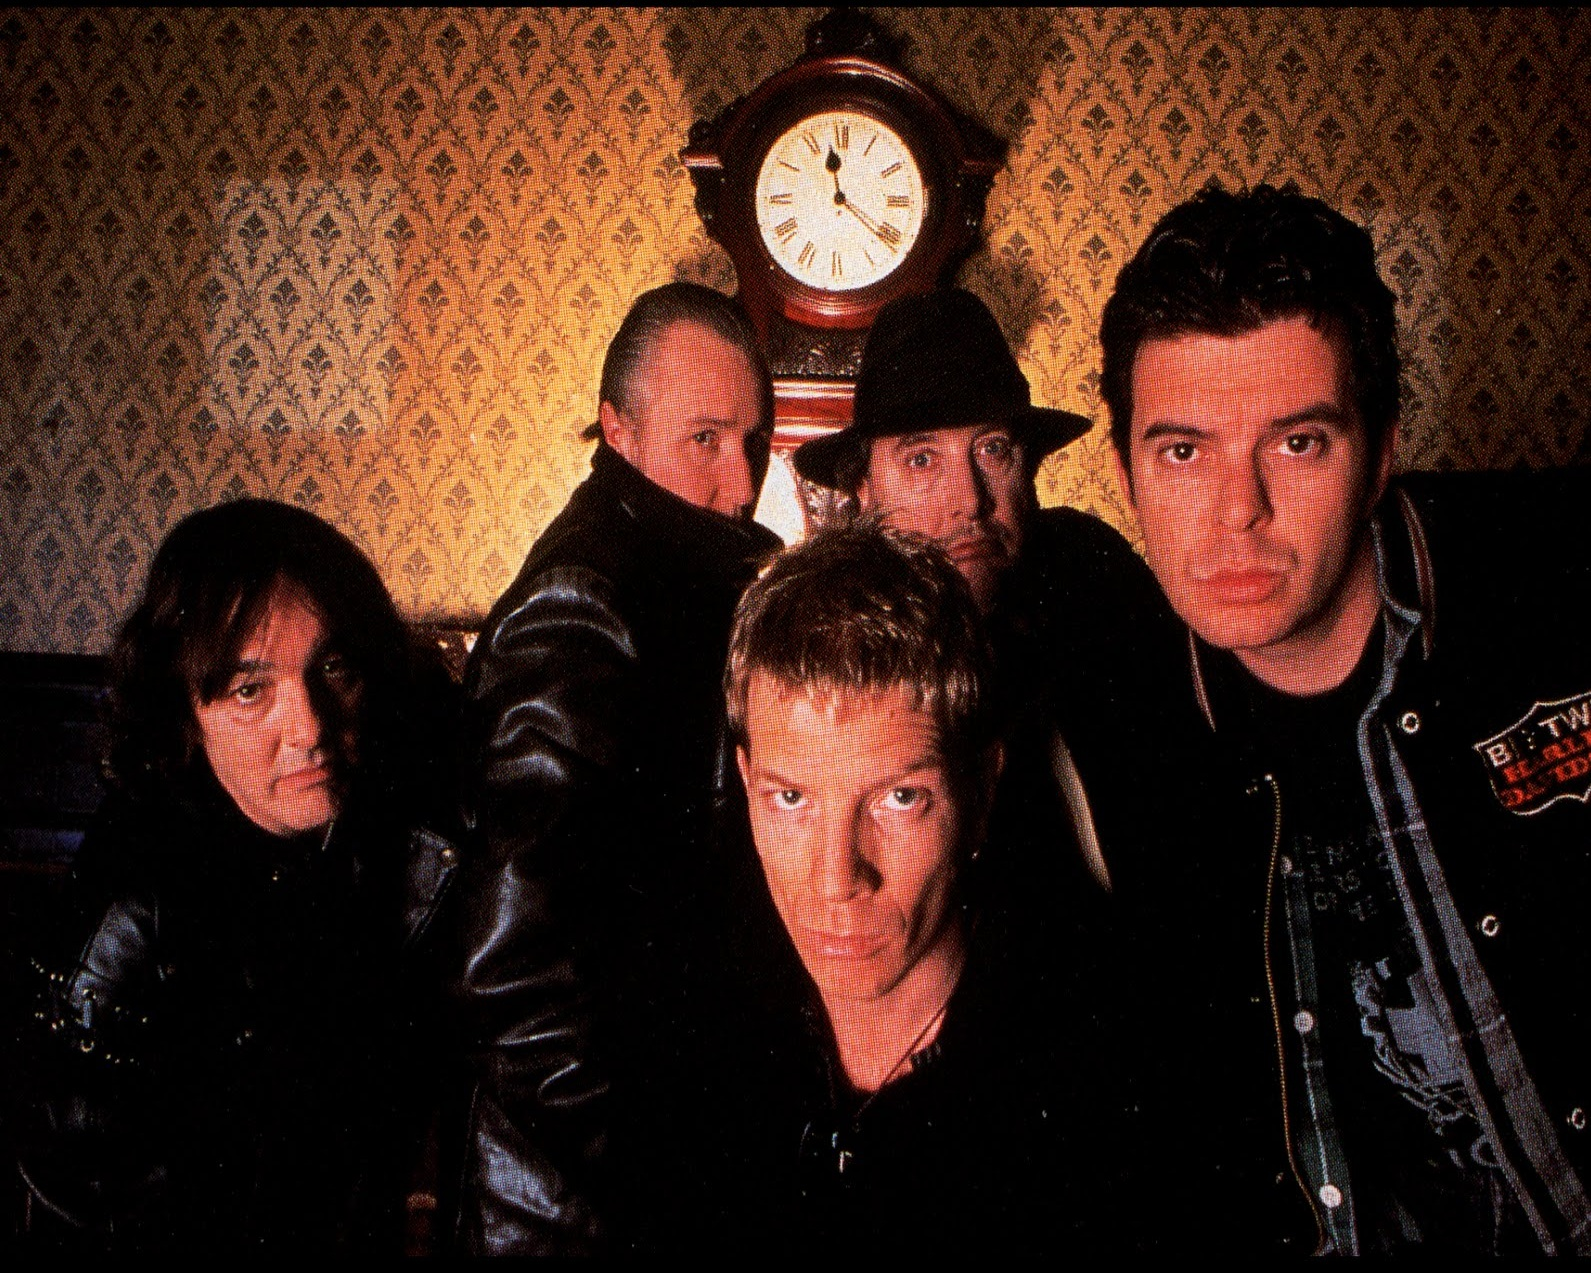 The new line-up, Clockwise from left: Dave Greenfield, John Ellis, Jet Black, JJ Burnel, & Paul Roberts